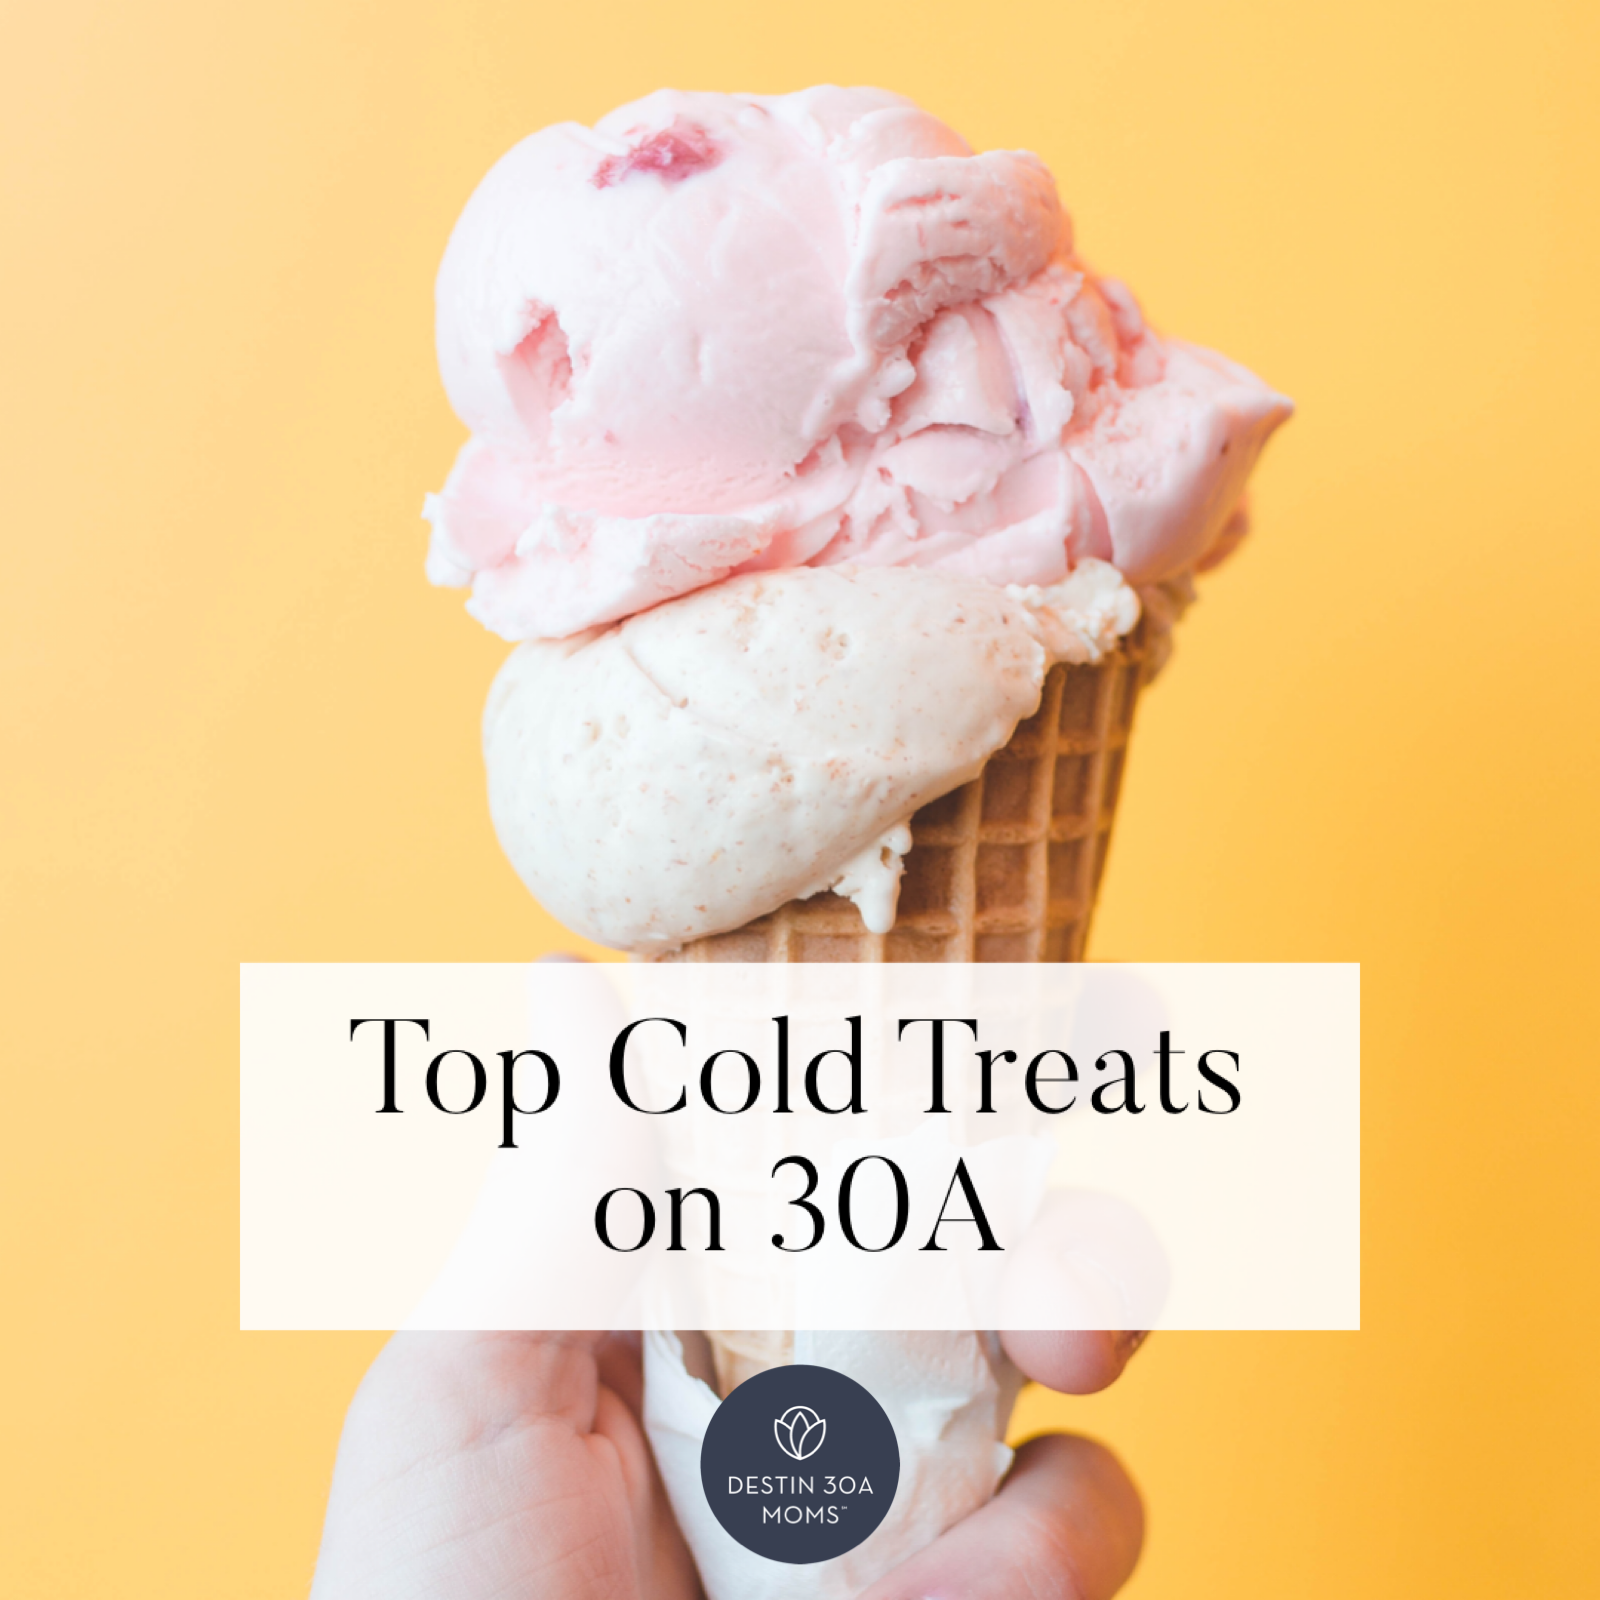 top cold treats on 30a